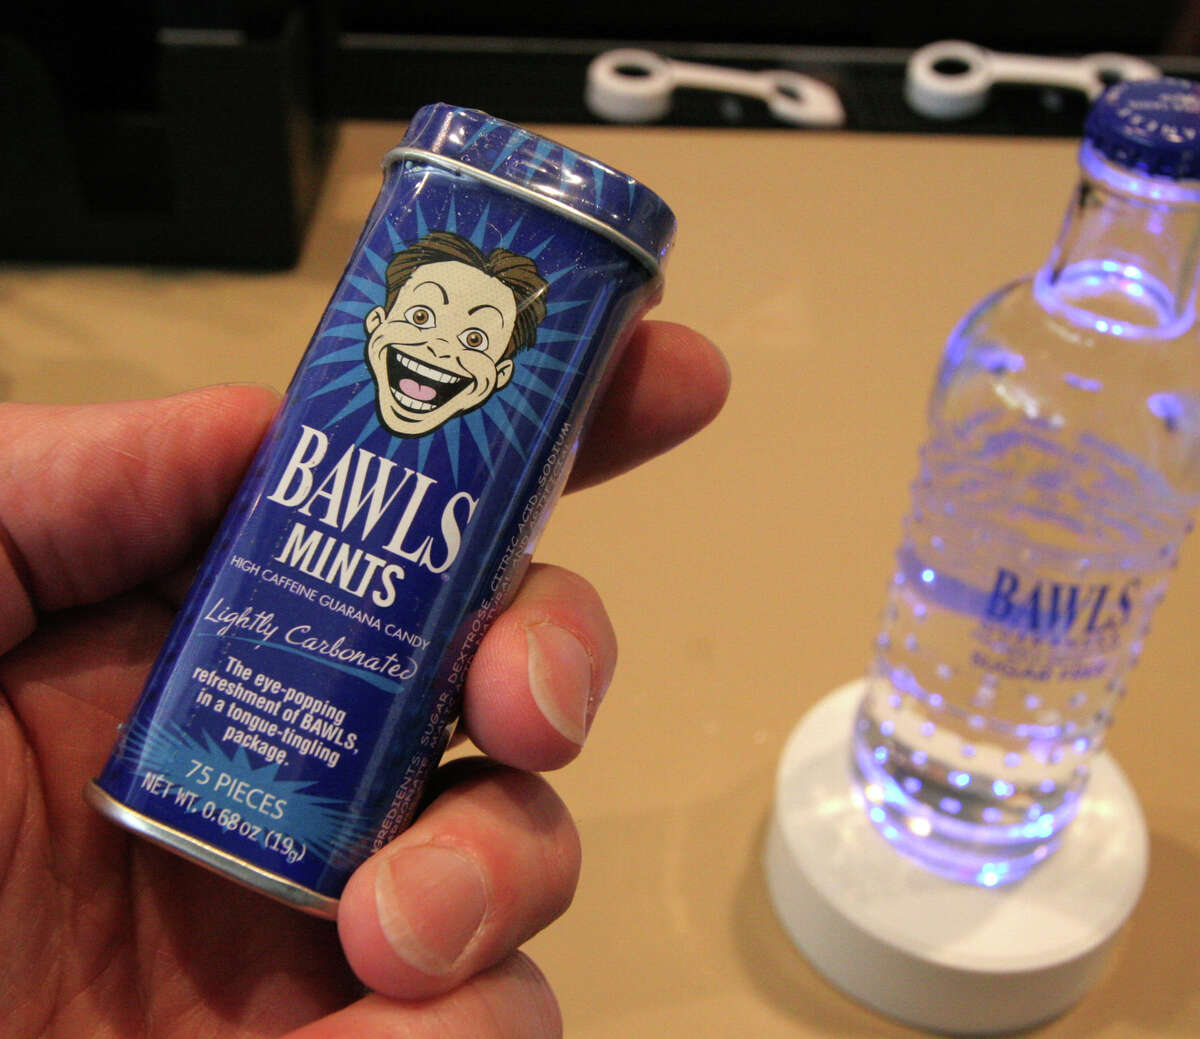 Bawls mints come in a tin of 75 and contain 1 mg of caffeine and guarana per mint. Available at thinkgeek.com.